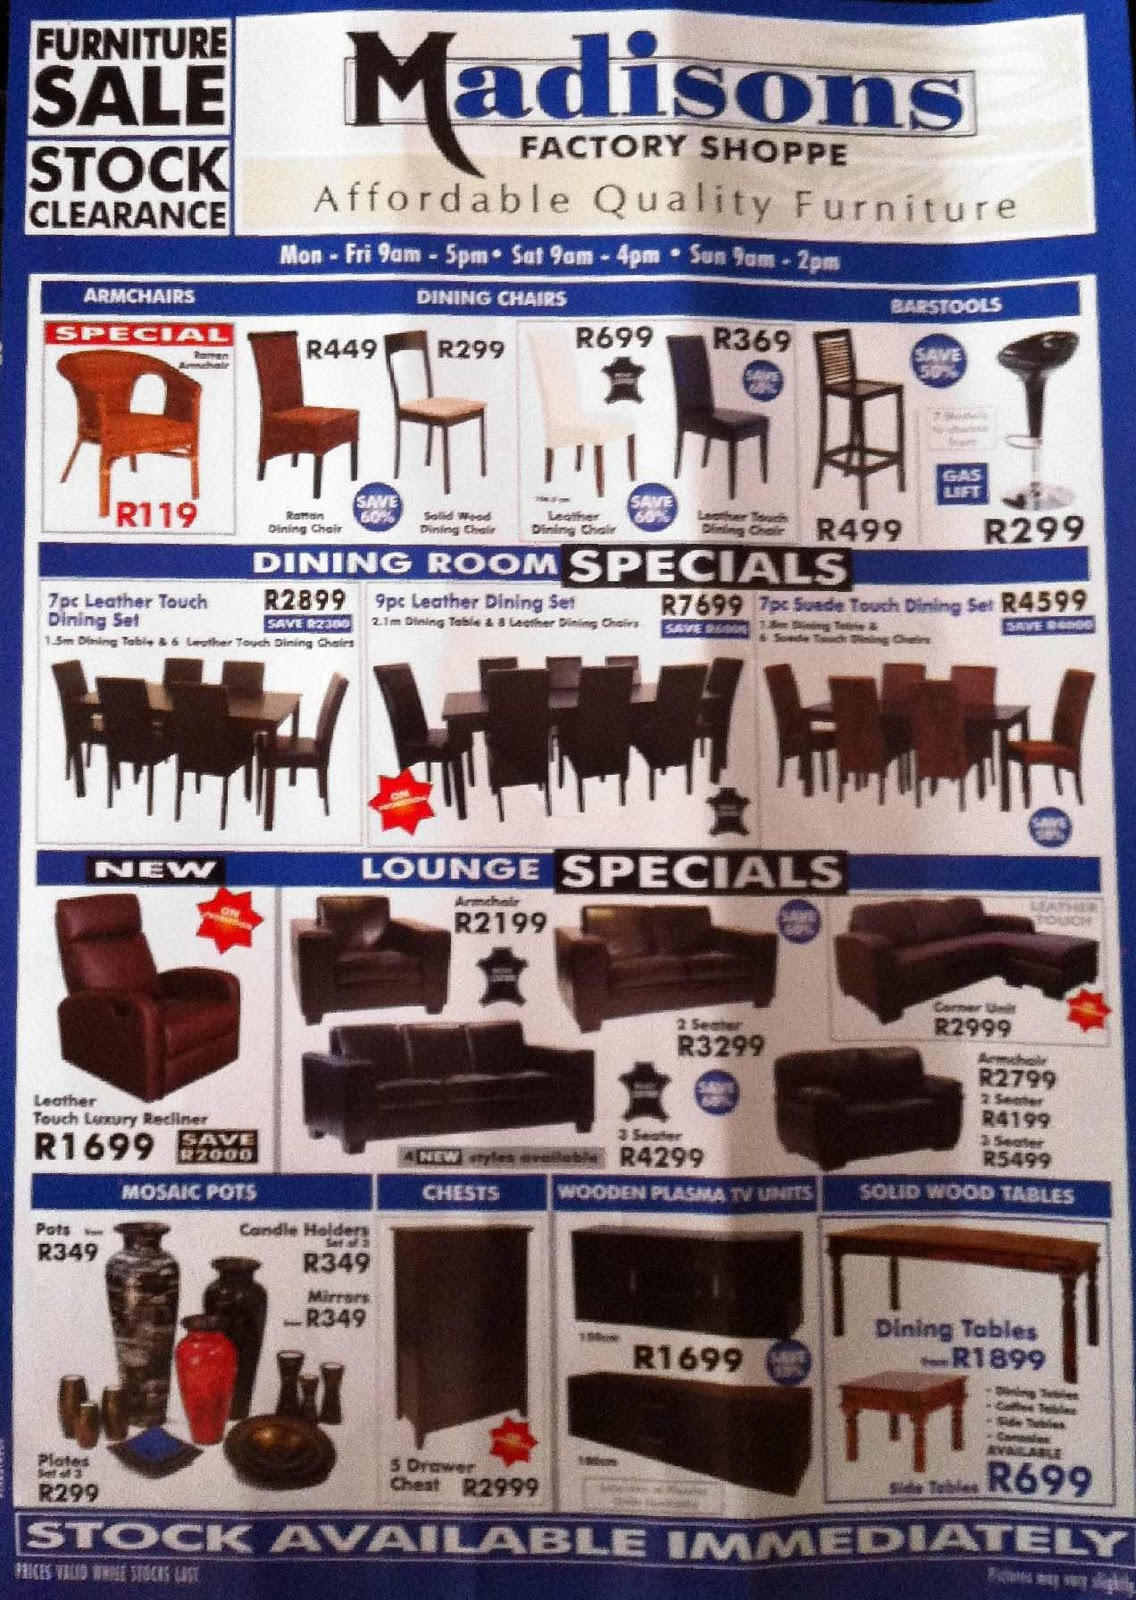 Boardwalk inkwazi shopping mall in richards bay 082 851 9489 076 images frompo Home furniture catalogue south africa